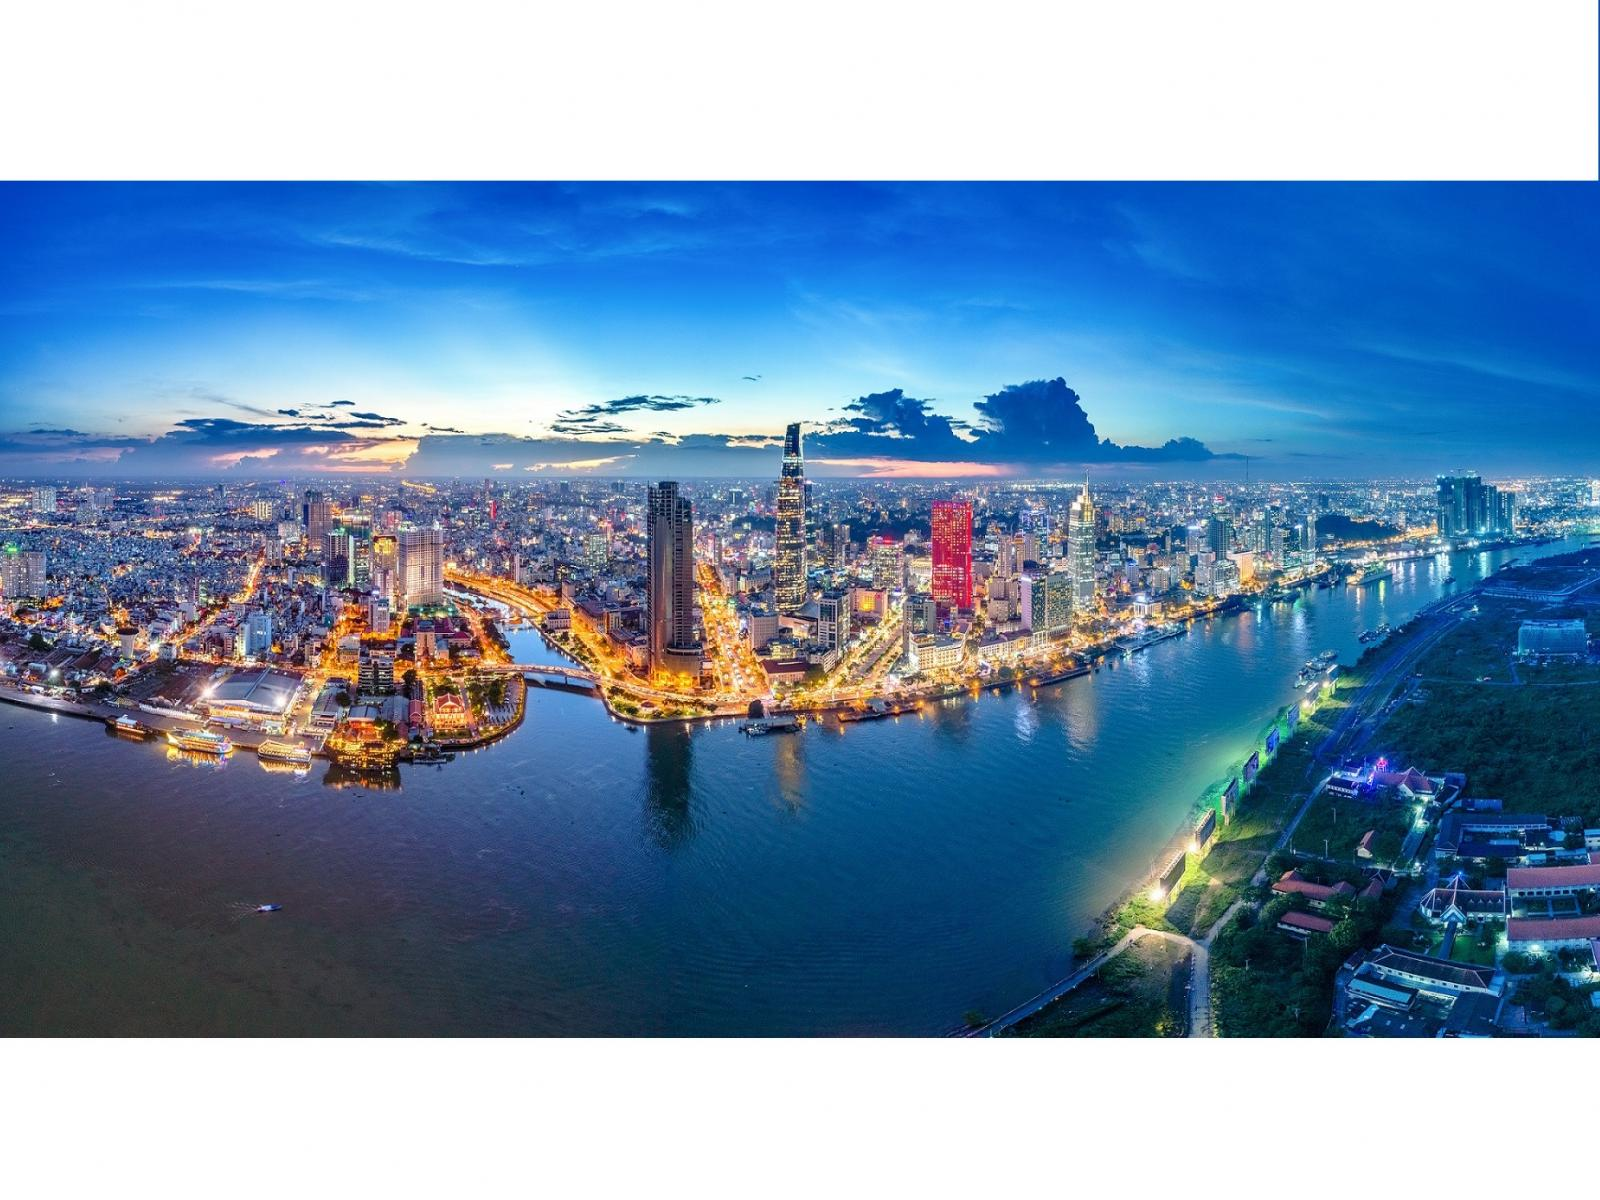 Stunning view of Ho Chi Minh City by night with skyscrapers and lights